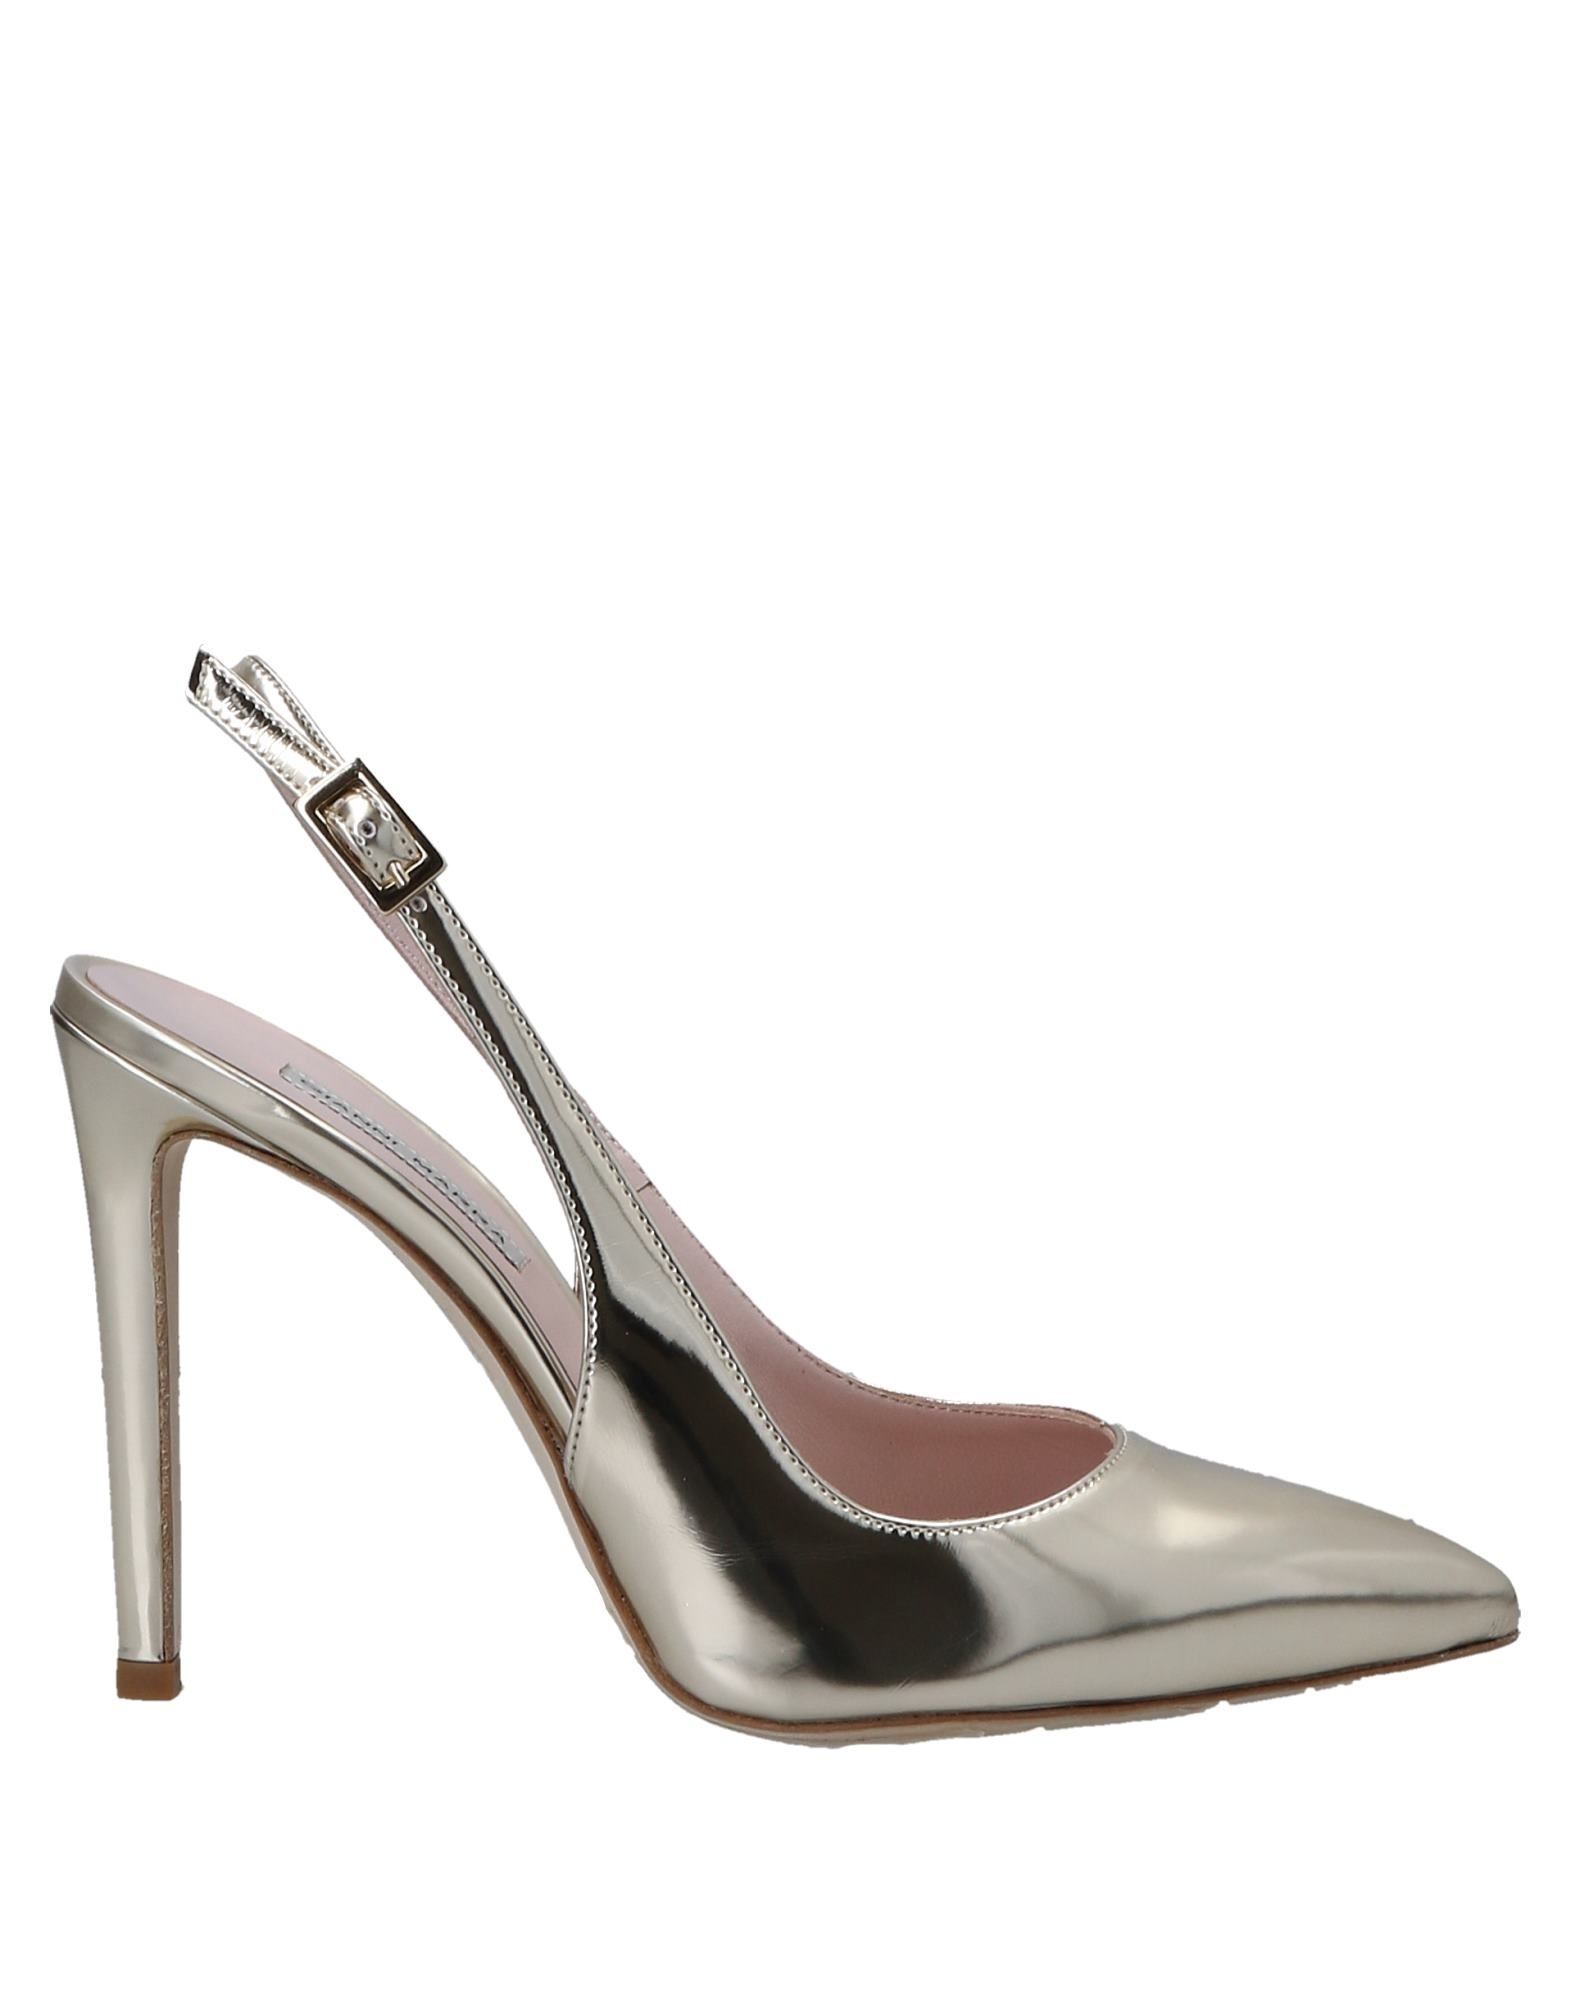 GIANNI MARRA | GIANNI MARRA Pumps 11558948 | Goxip